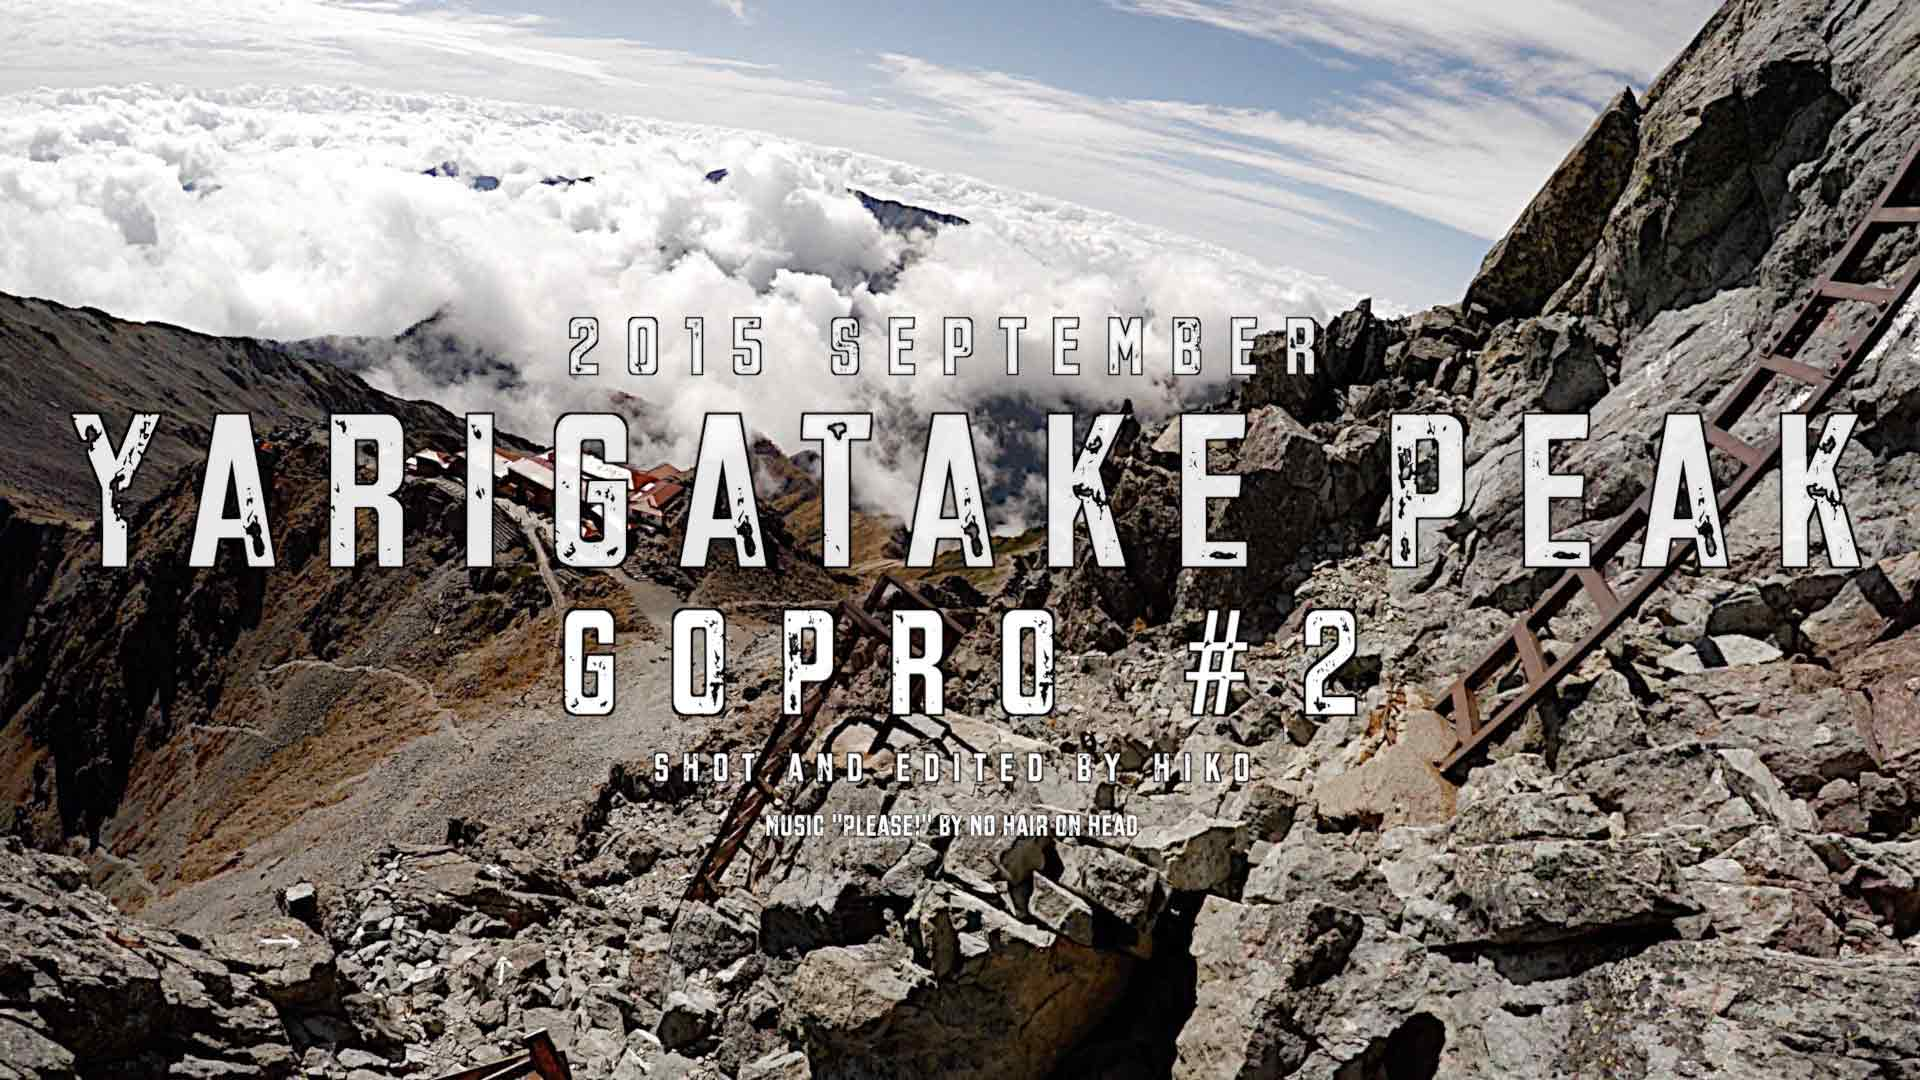 2015-Sep-Yarigatake-Peak-GoPro-2-Featured-Image